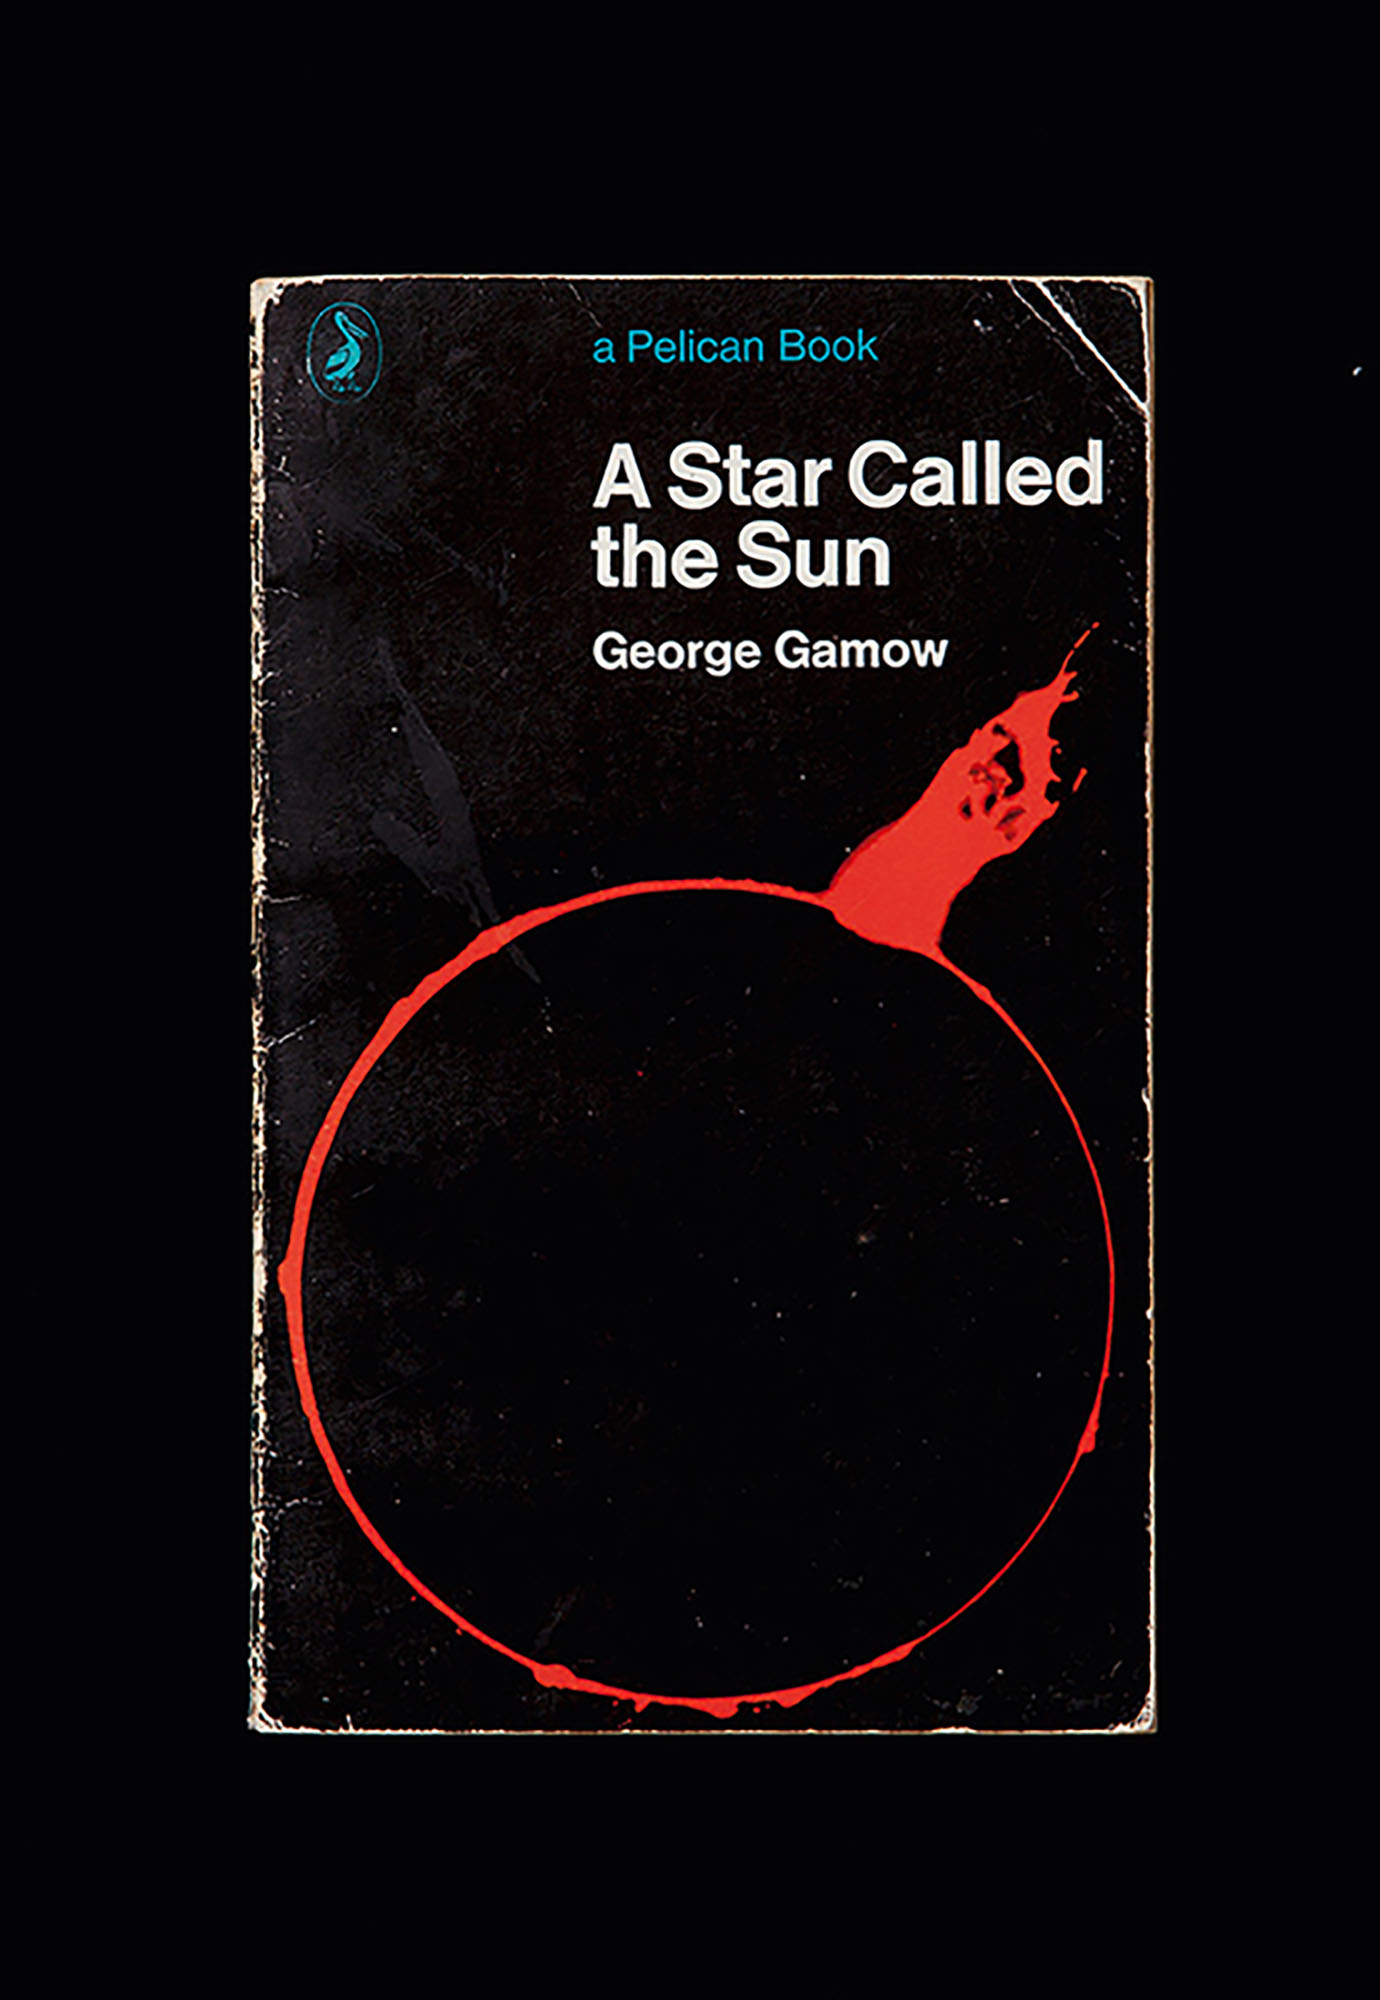 Front cover of George Gamow, *A Star Called the Sun* (Australia: A Pelican Book, Penguin, 1964). Reproduction photographer: Andrew Curtis.